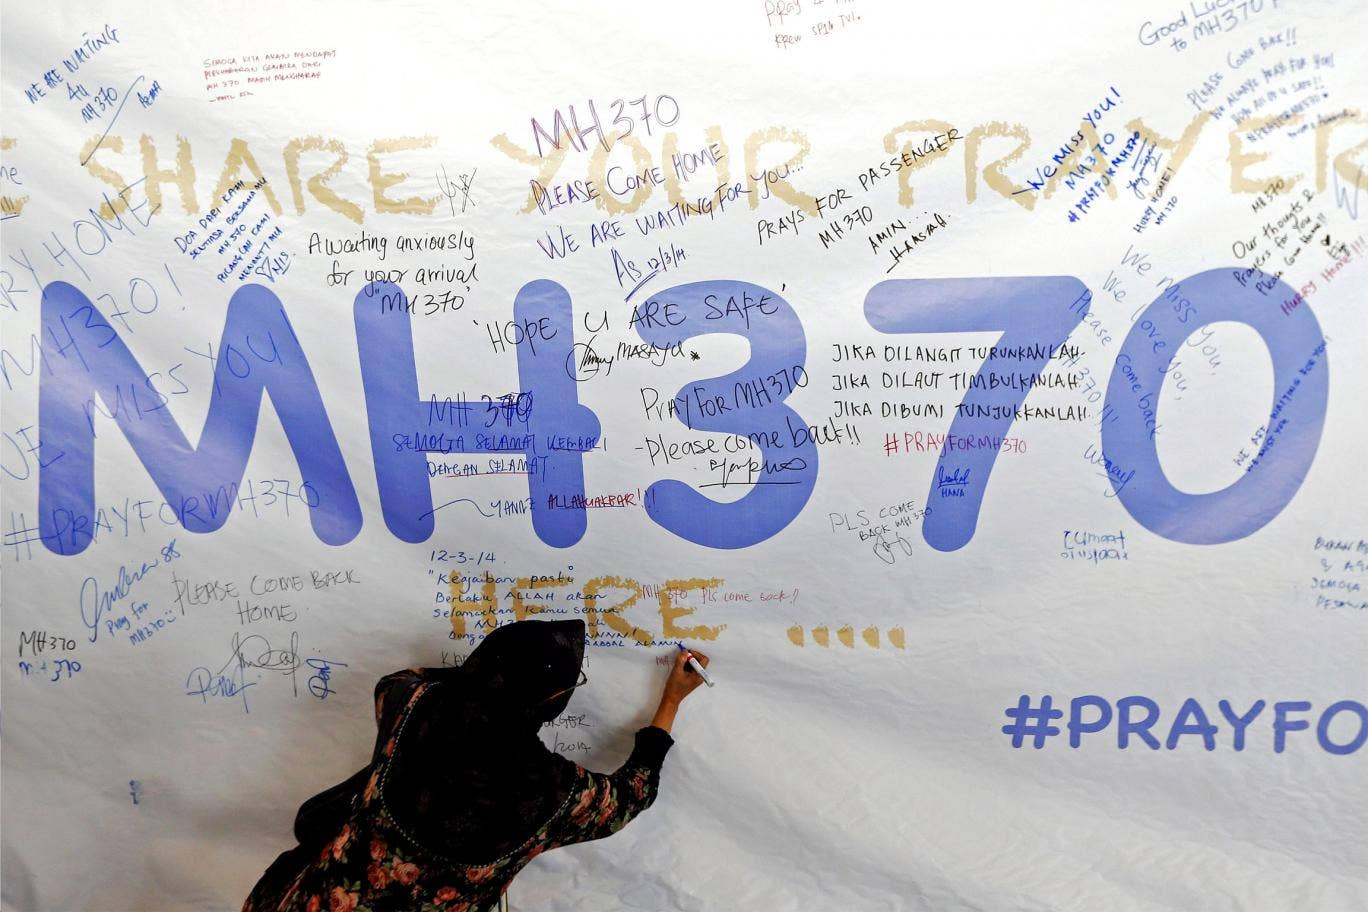 A woman writes a message of support and hope for the passengers of the missing Malaysia Airlines MH370 on a banner at Kuala Lumpur International Airport